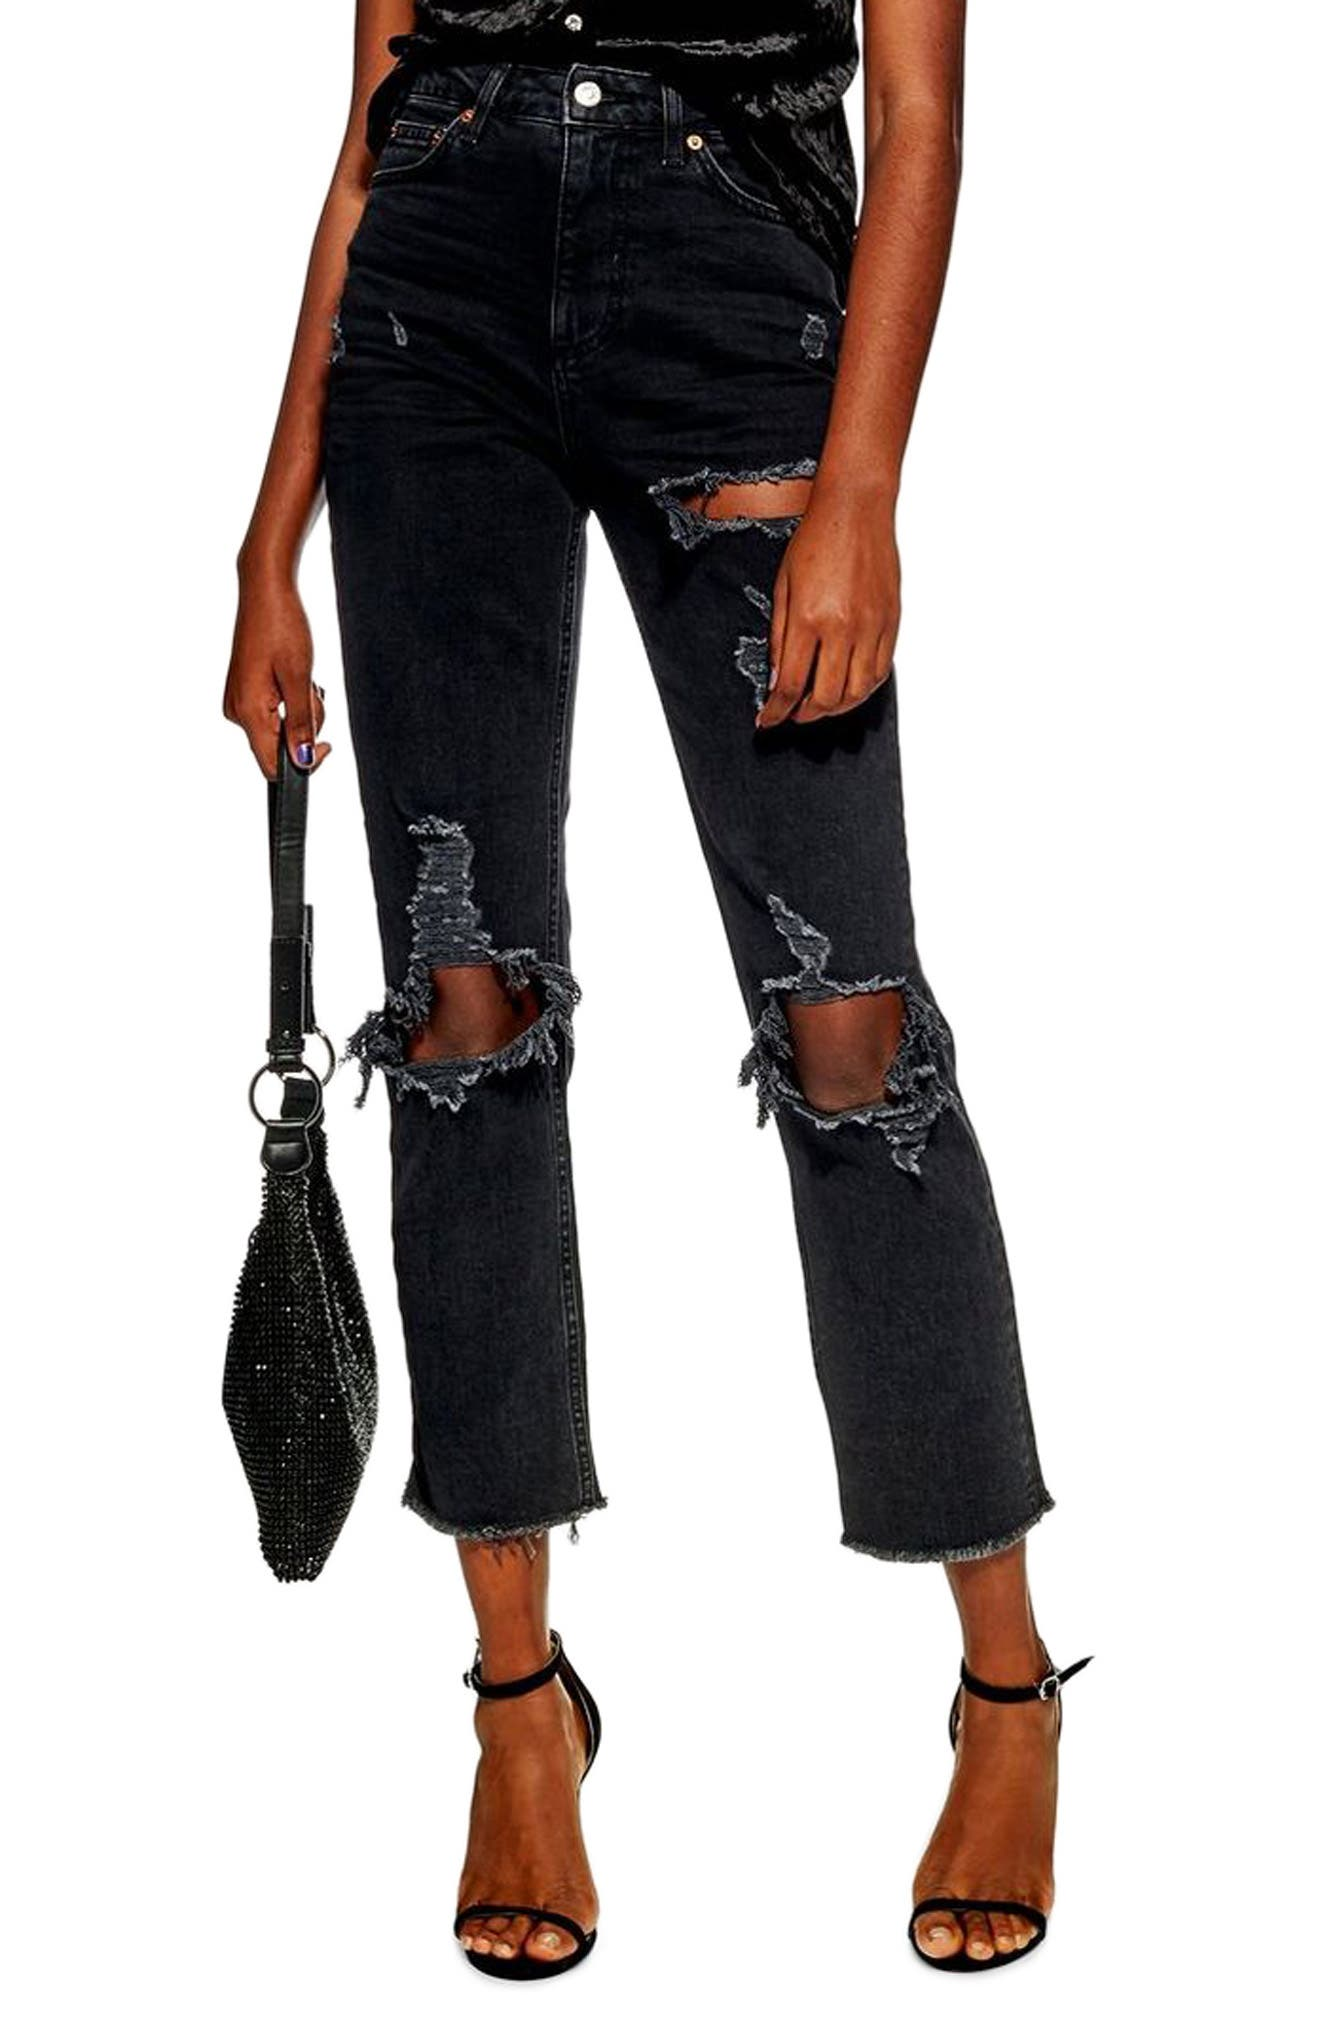 TOPSHOP, Ripped Straight Jeans, Main thumbnail 1, color, WASHED BLACK